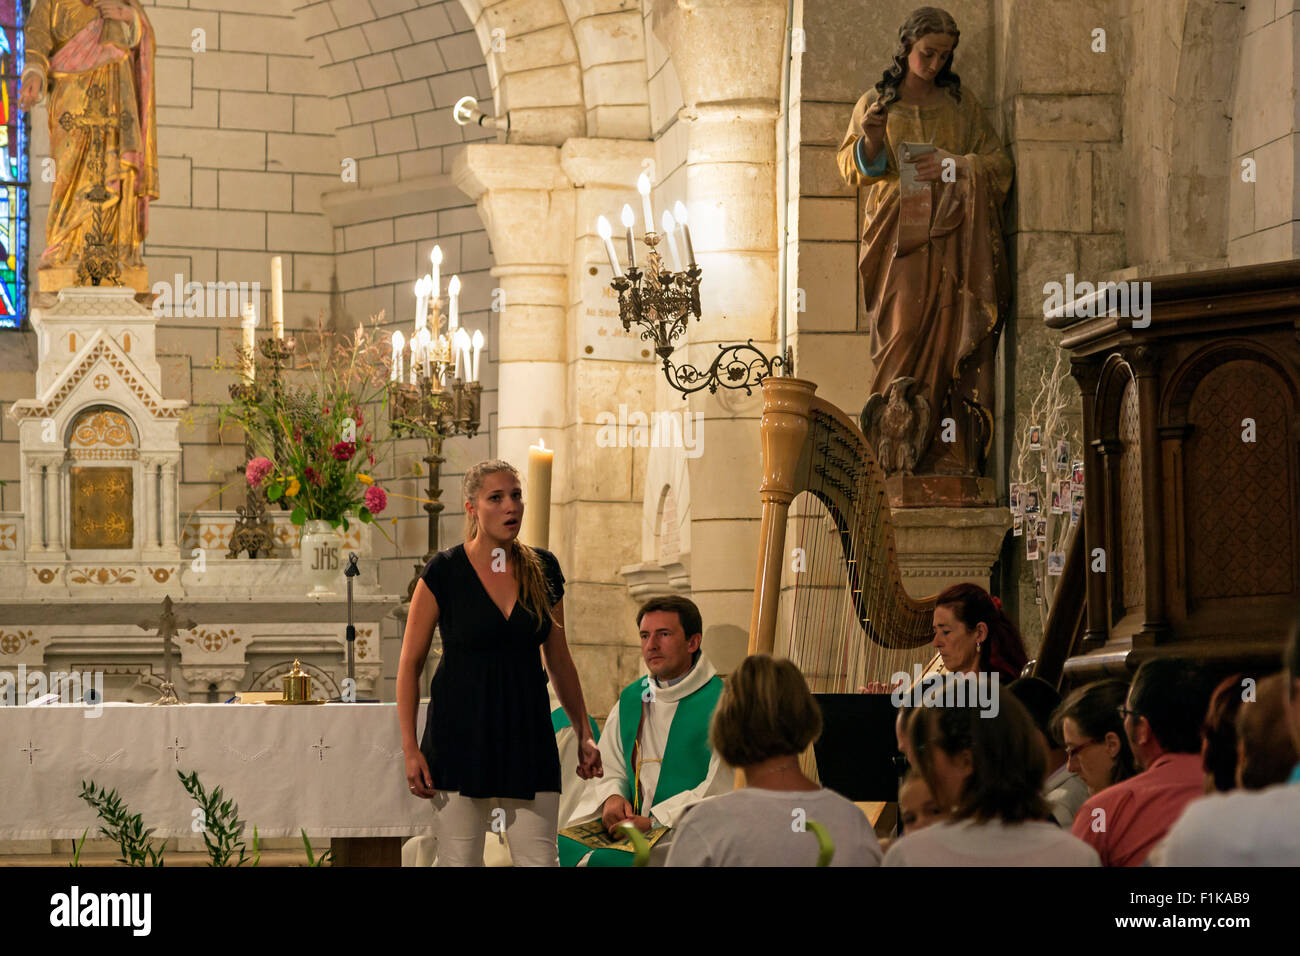 Recital at the church of St. Cybardeaux, Charente Maritime, south west France - Stock Image